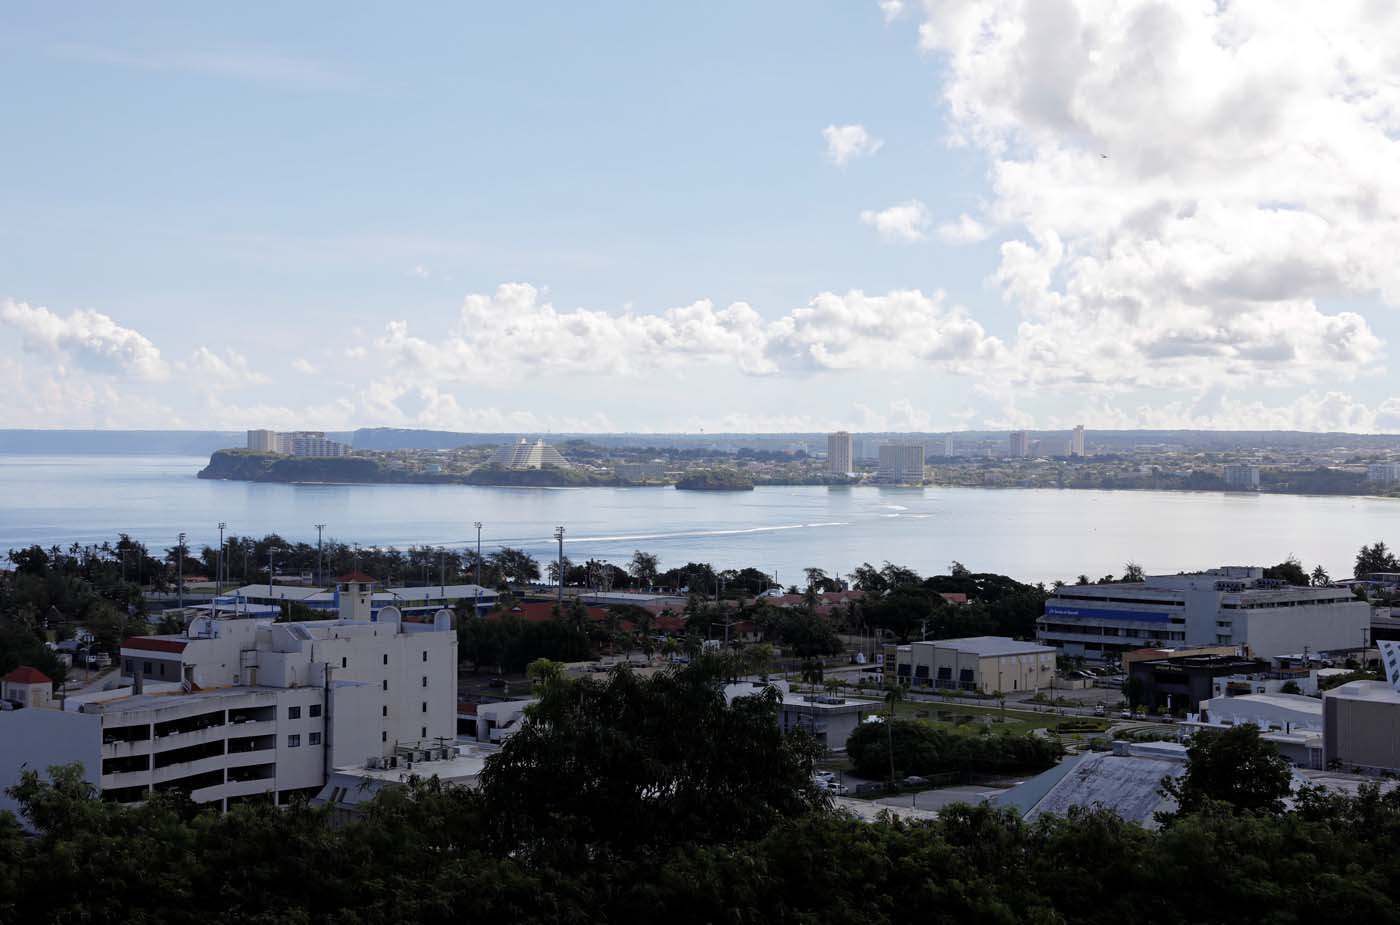 A view of a part of the Tamuning city overlooking the Tumon tourist district on the island of Guam, a U.S. Pacific Territory, August 11, 2017. REUTERS/Erik De Castro